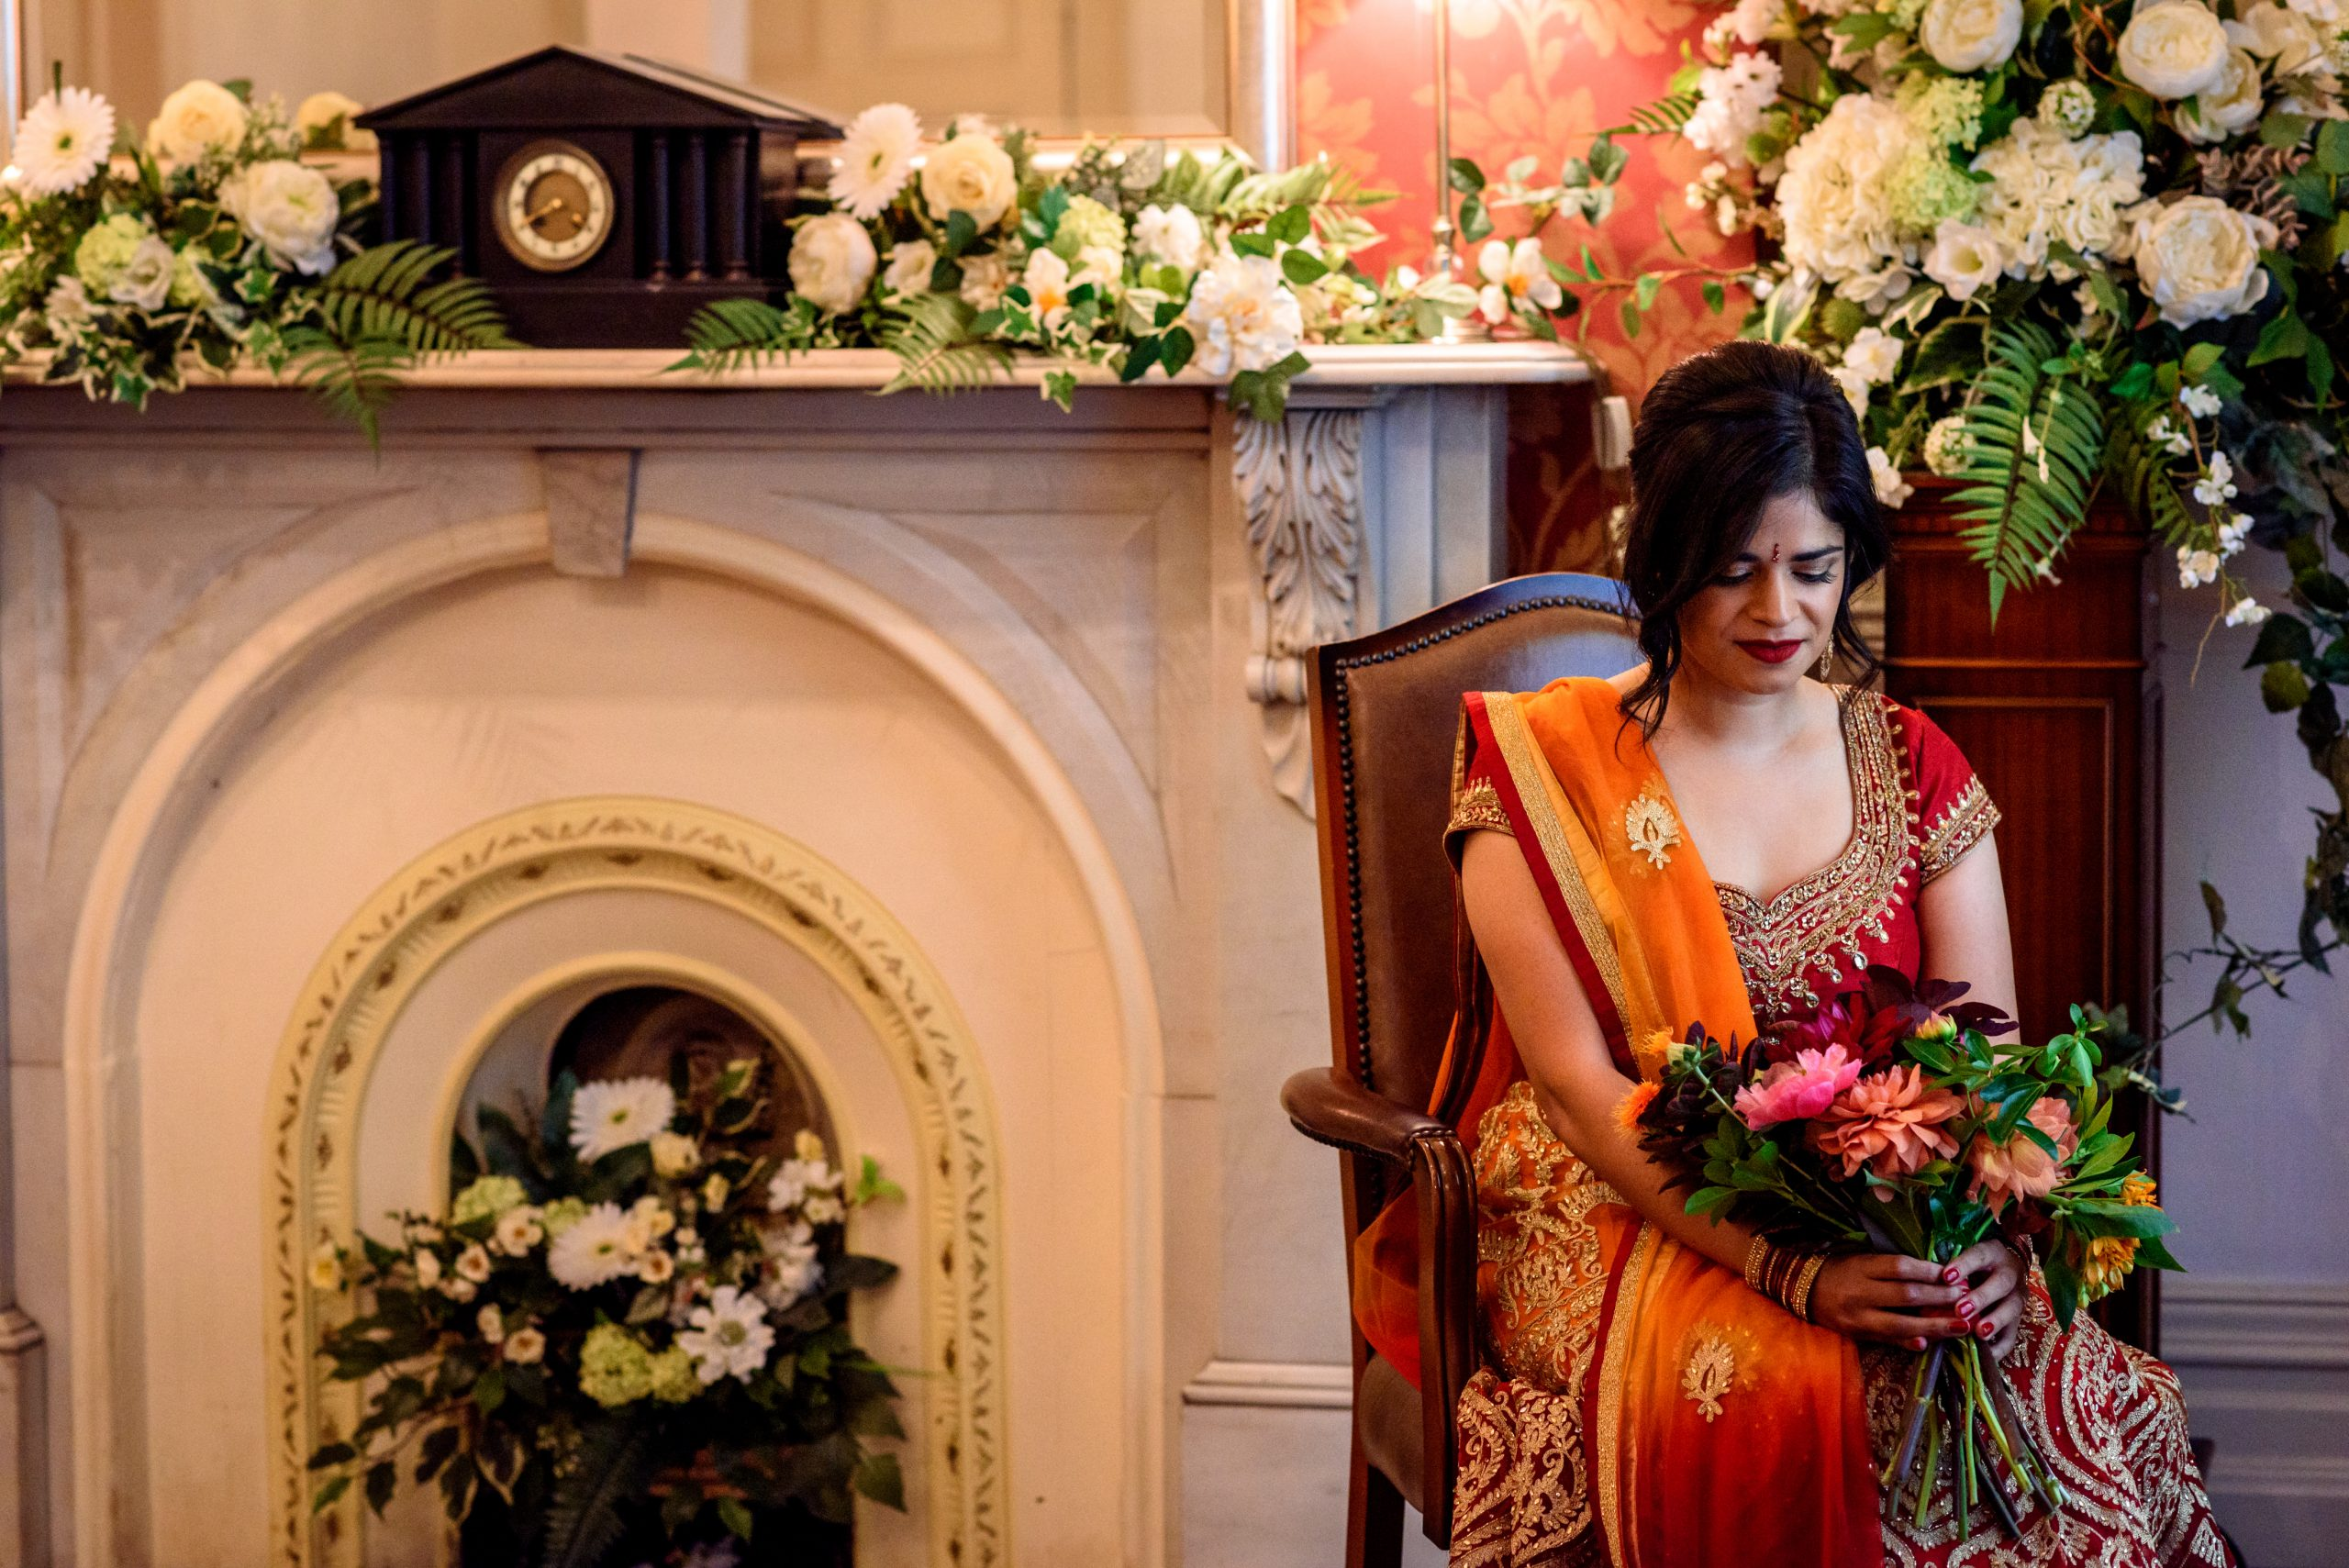 Indian Bride waiting for wedding ceremony at Southwark Registry Office